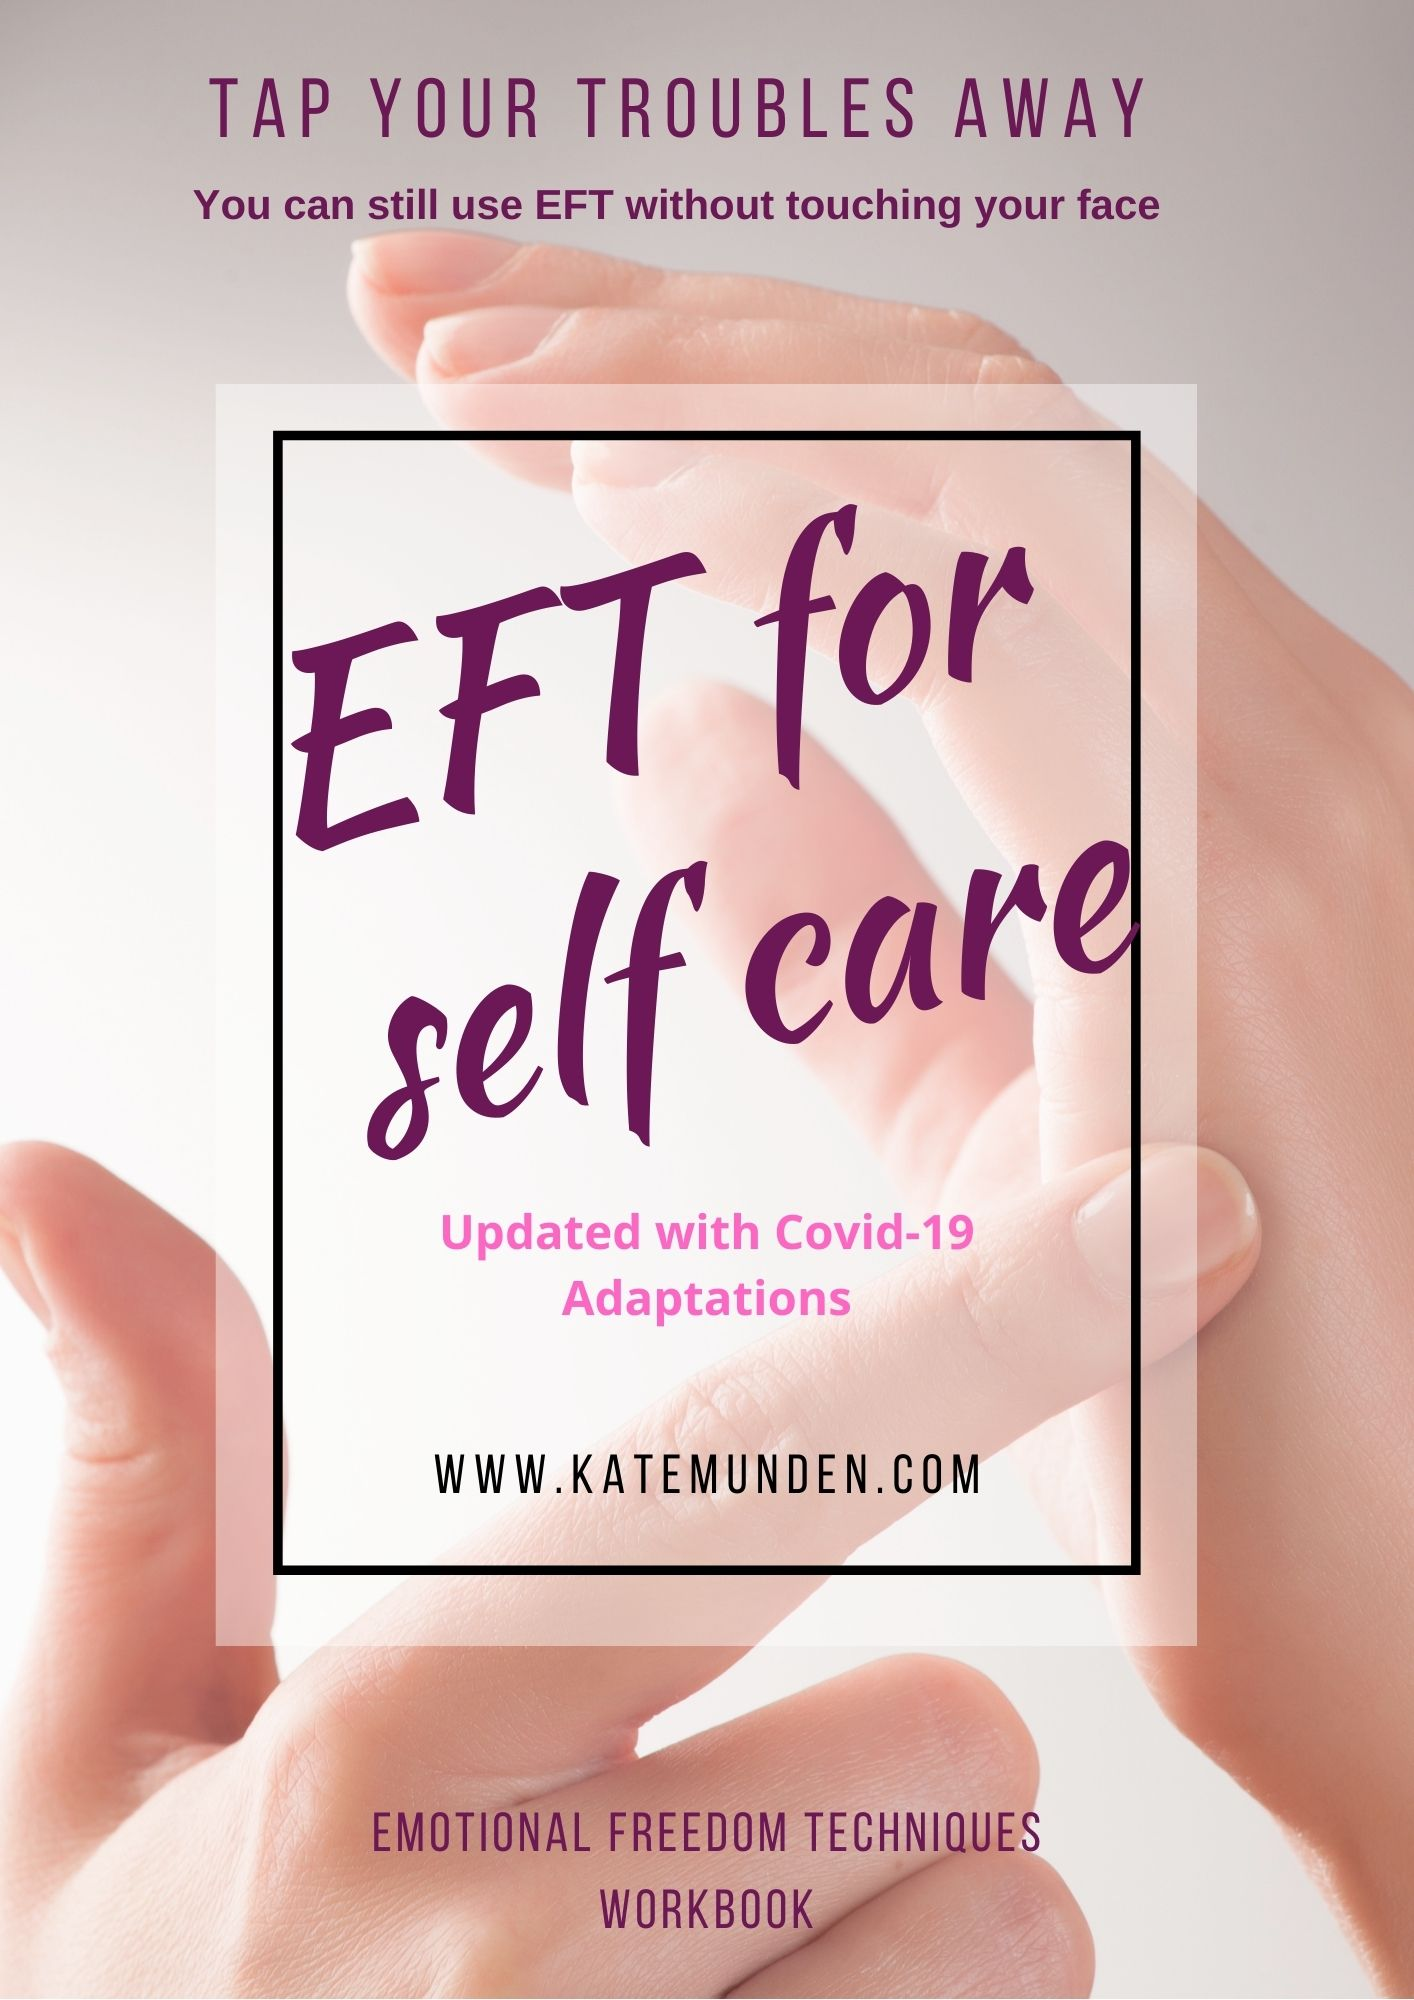 EFT for self care - free guide image